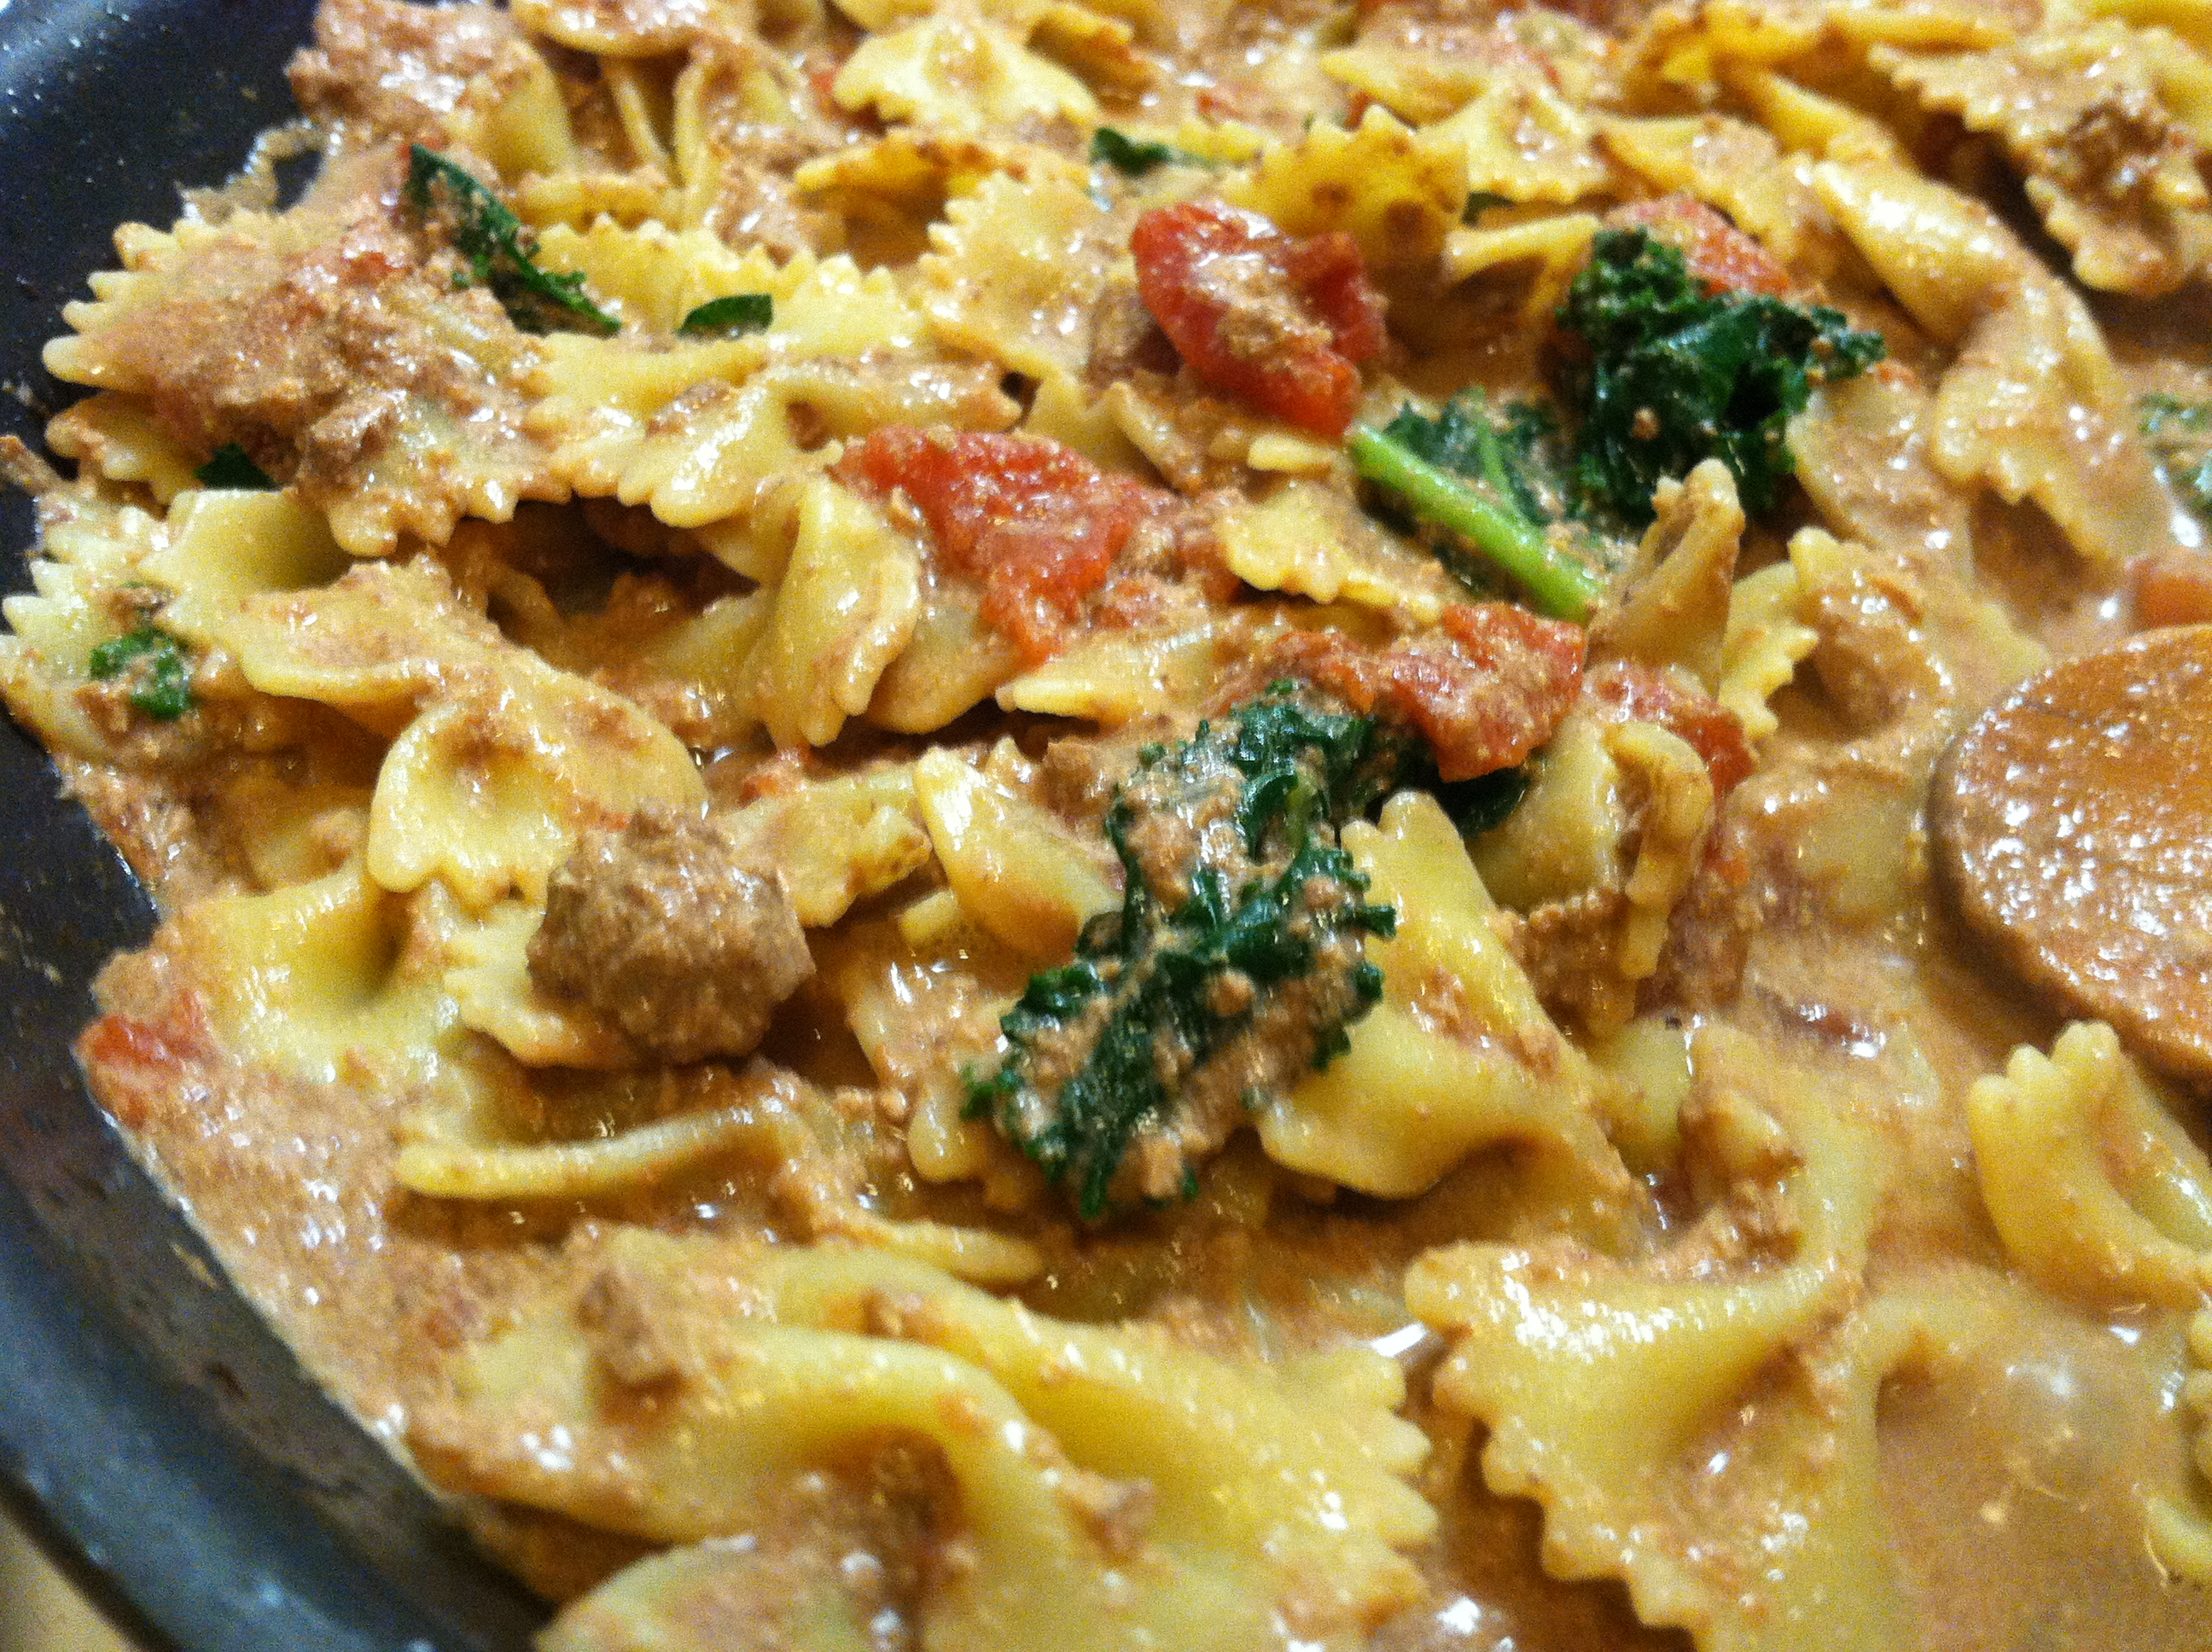 Chicken liver pasta recipes food pasta tech for Baked chicken liver recipes